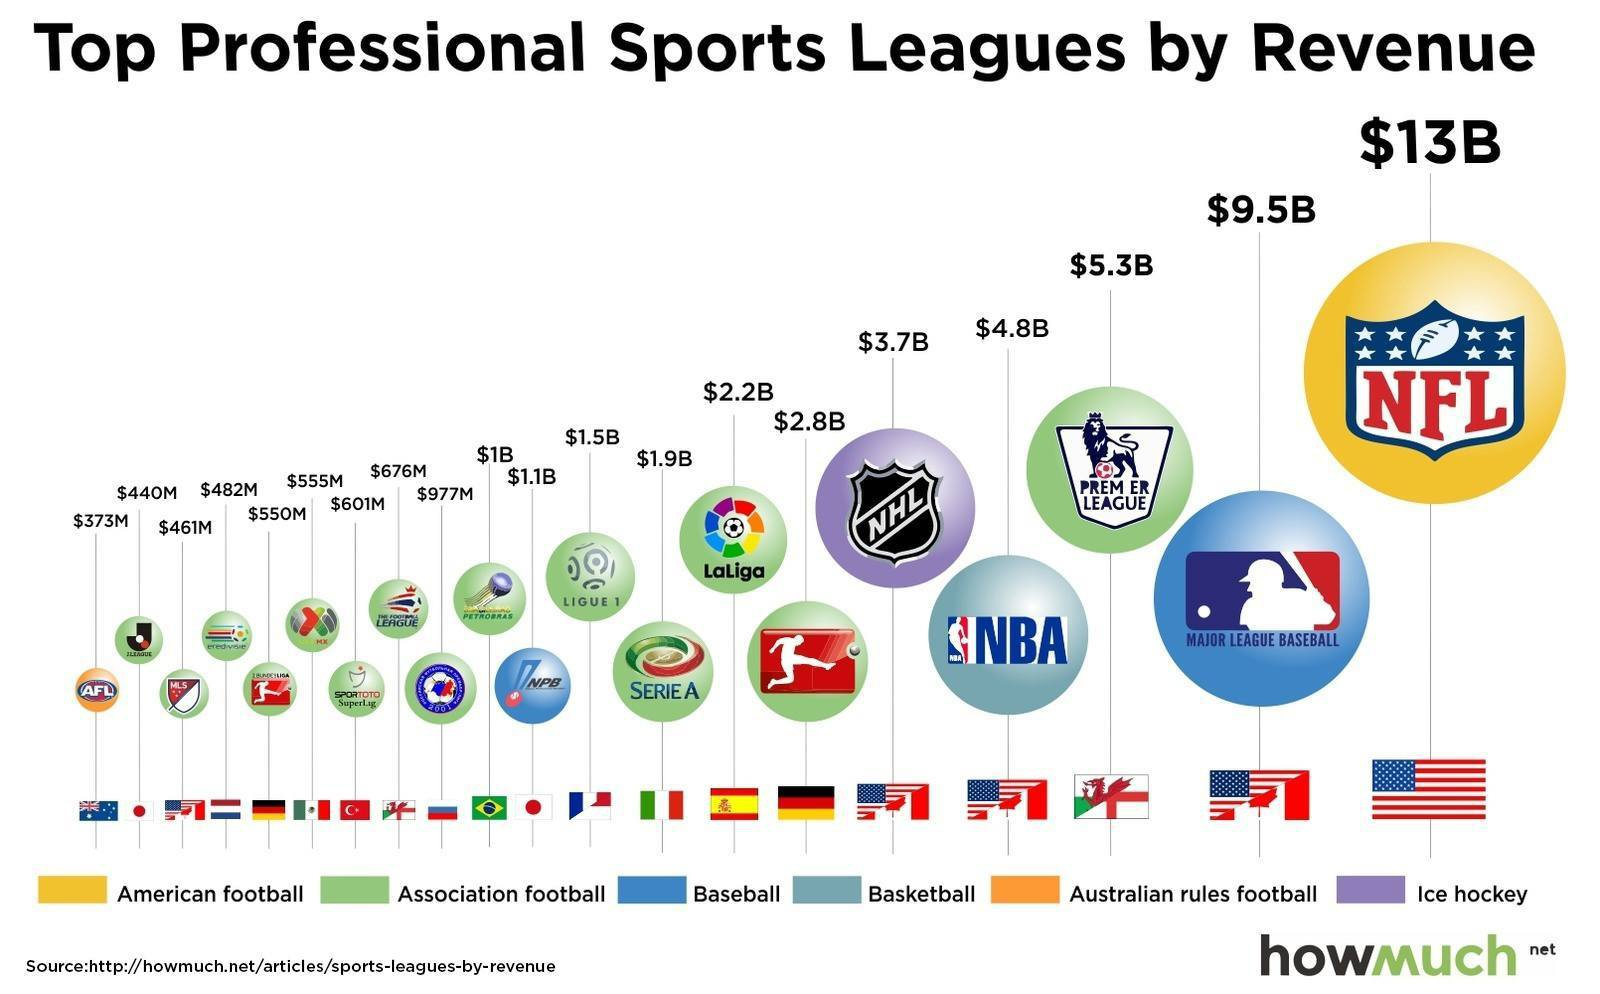 sports-leagues-by-revenue-9337-c600